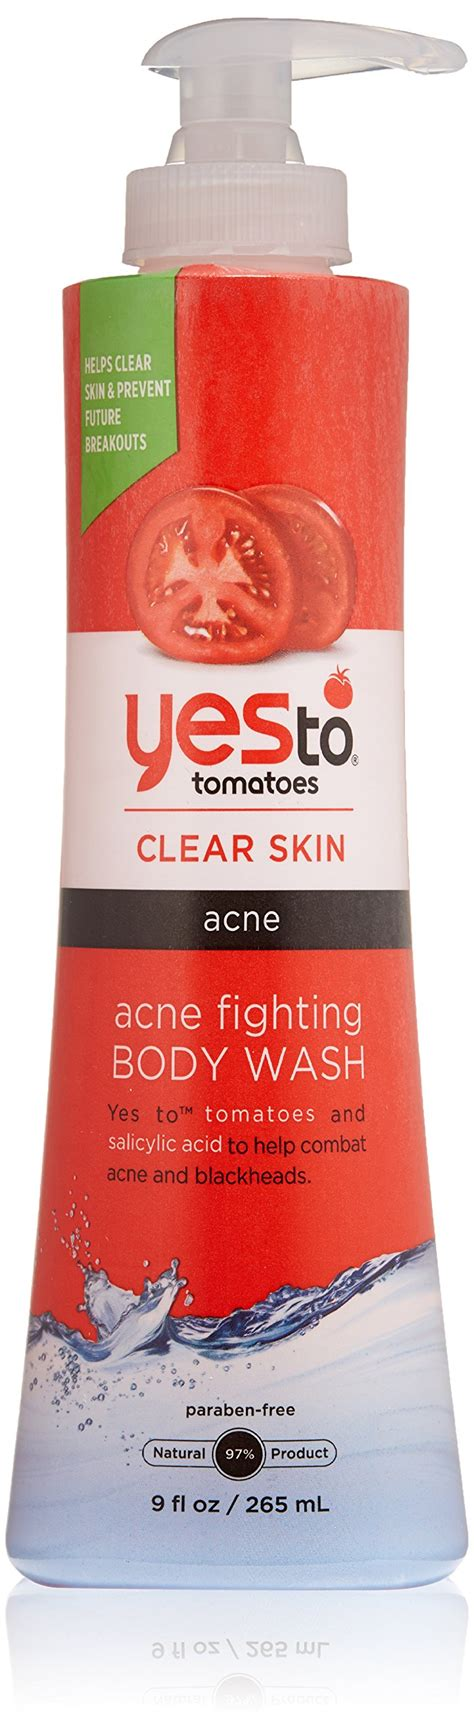 Yes To Tomatoes 3 Step Acne Fighting Clear Skin Regimen yes to tomatoes 3 step acne fighting and